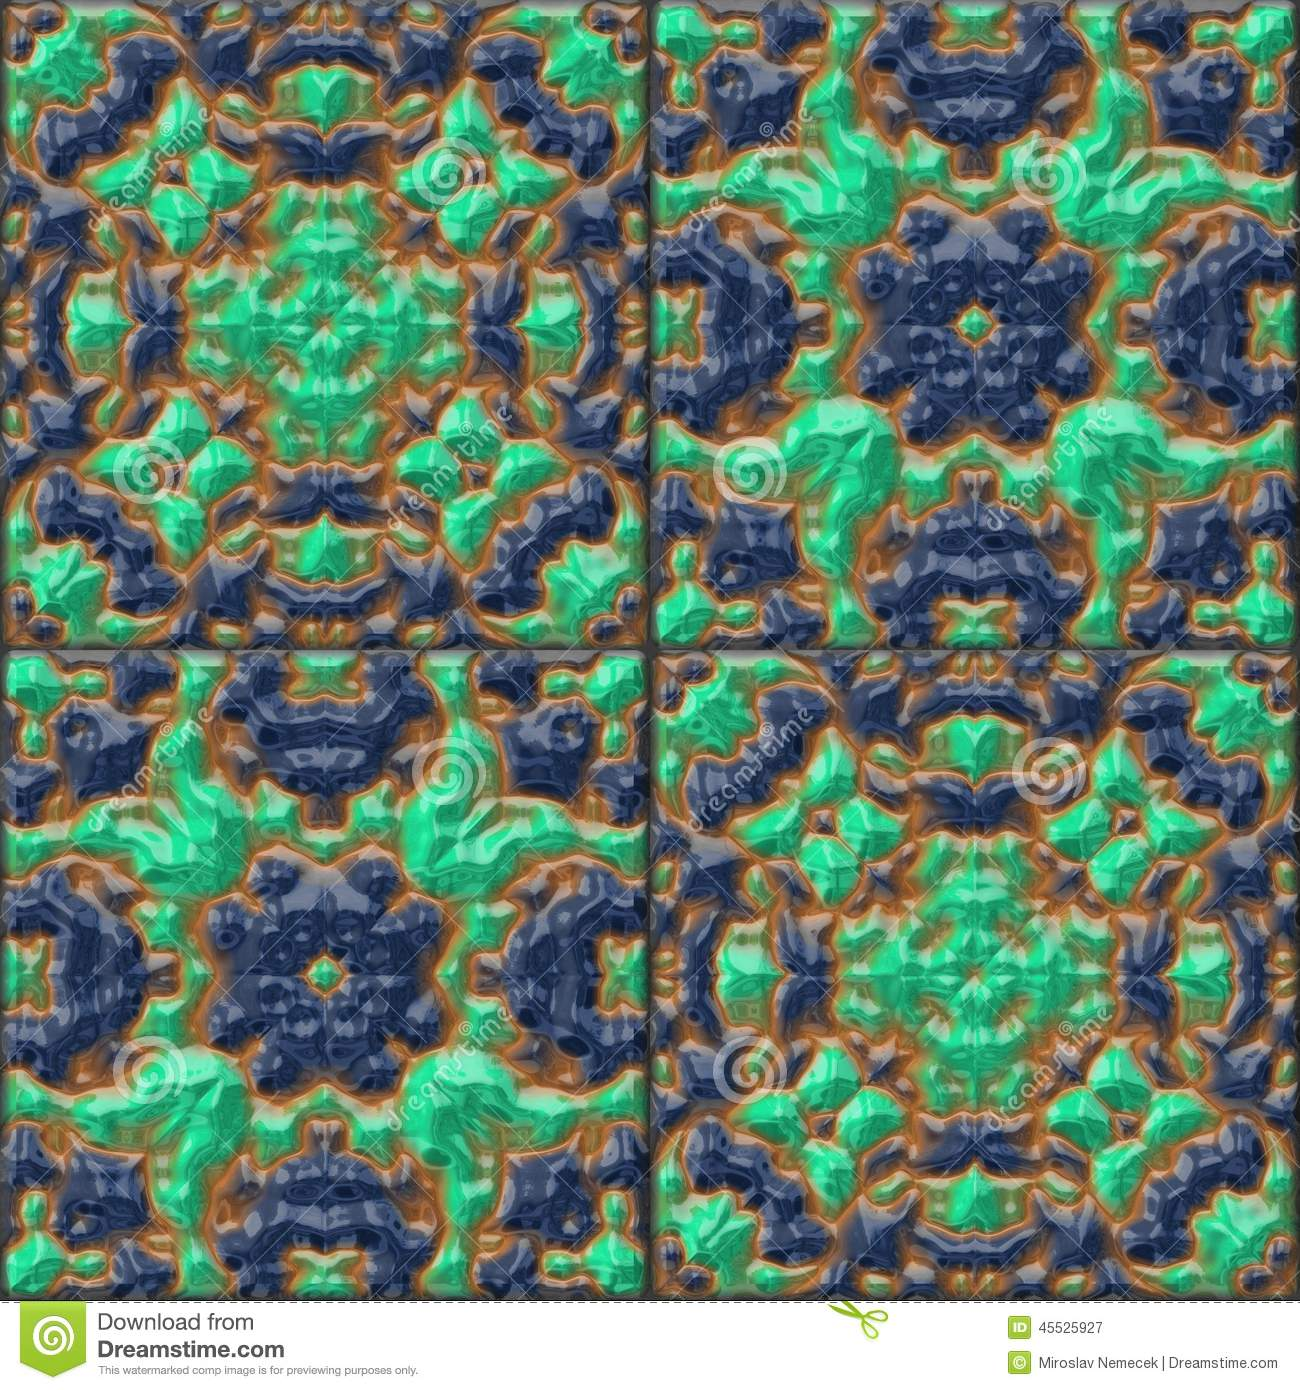 generated seamless tile background - photo #36